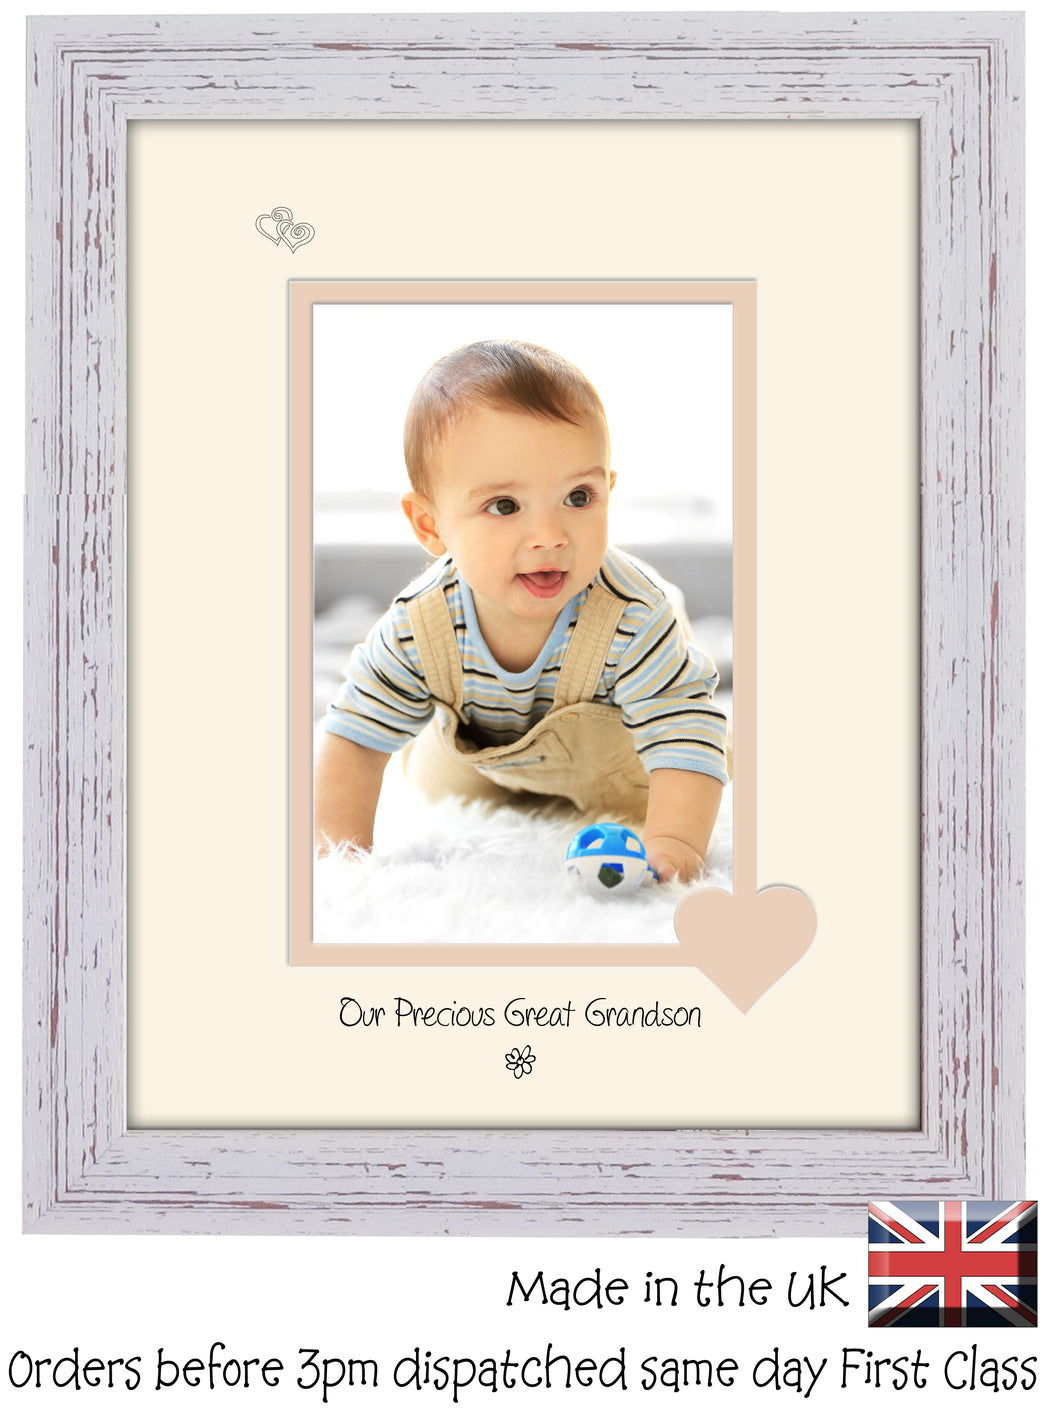 Great Grandson Photo Frame - Our precious Great Grandson Portrait photo frame 6